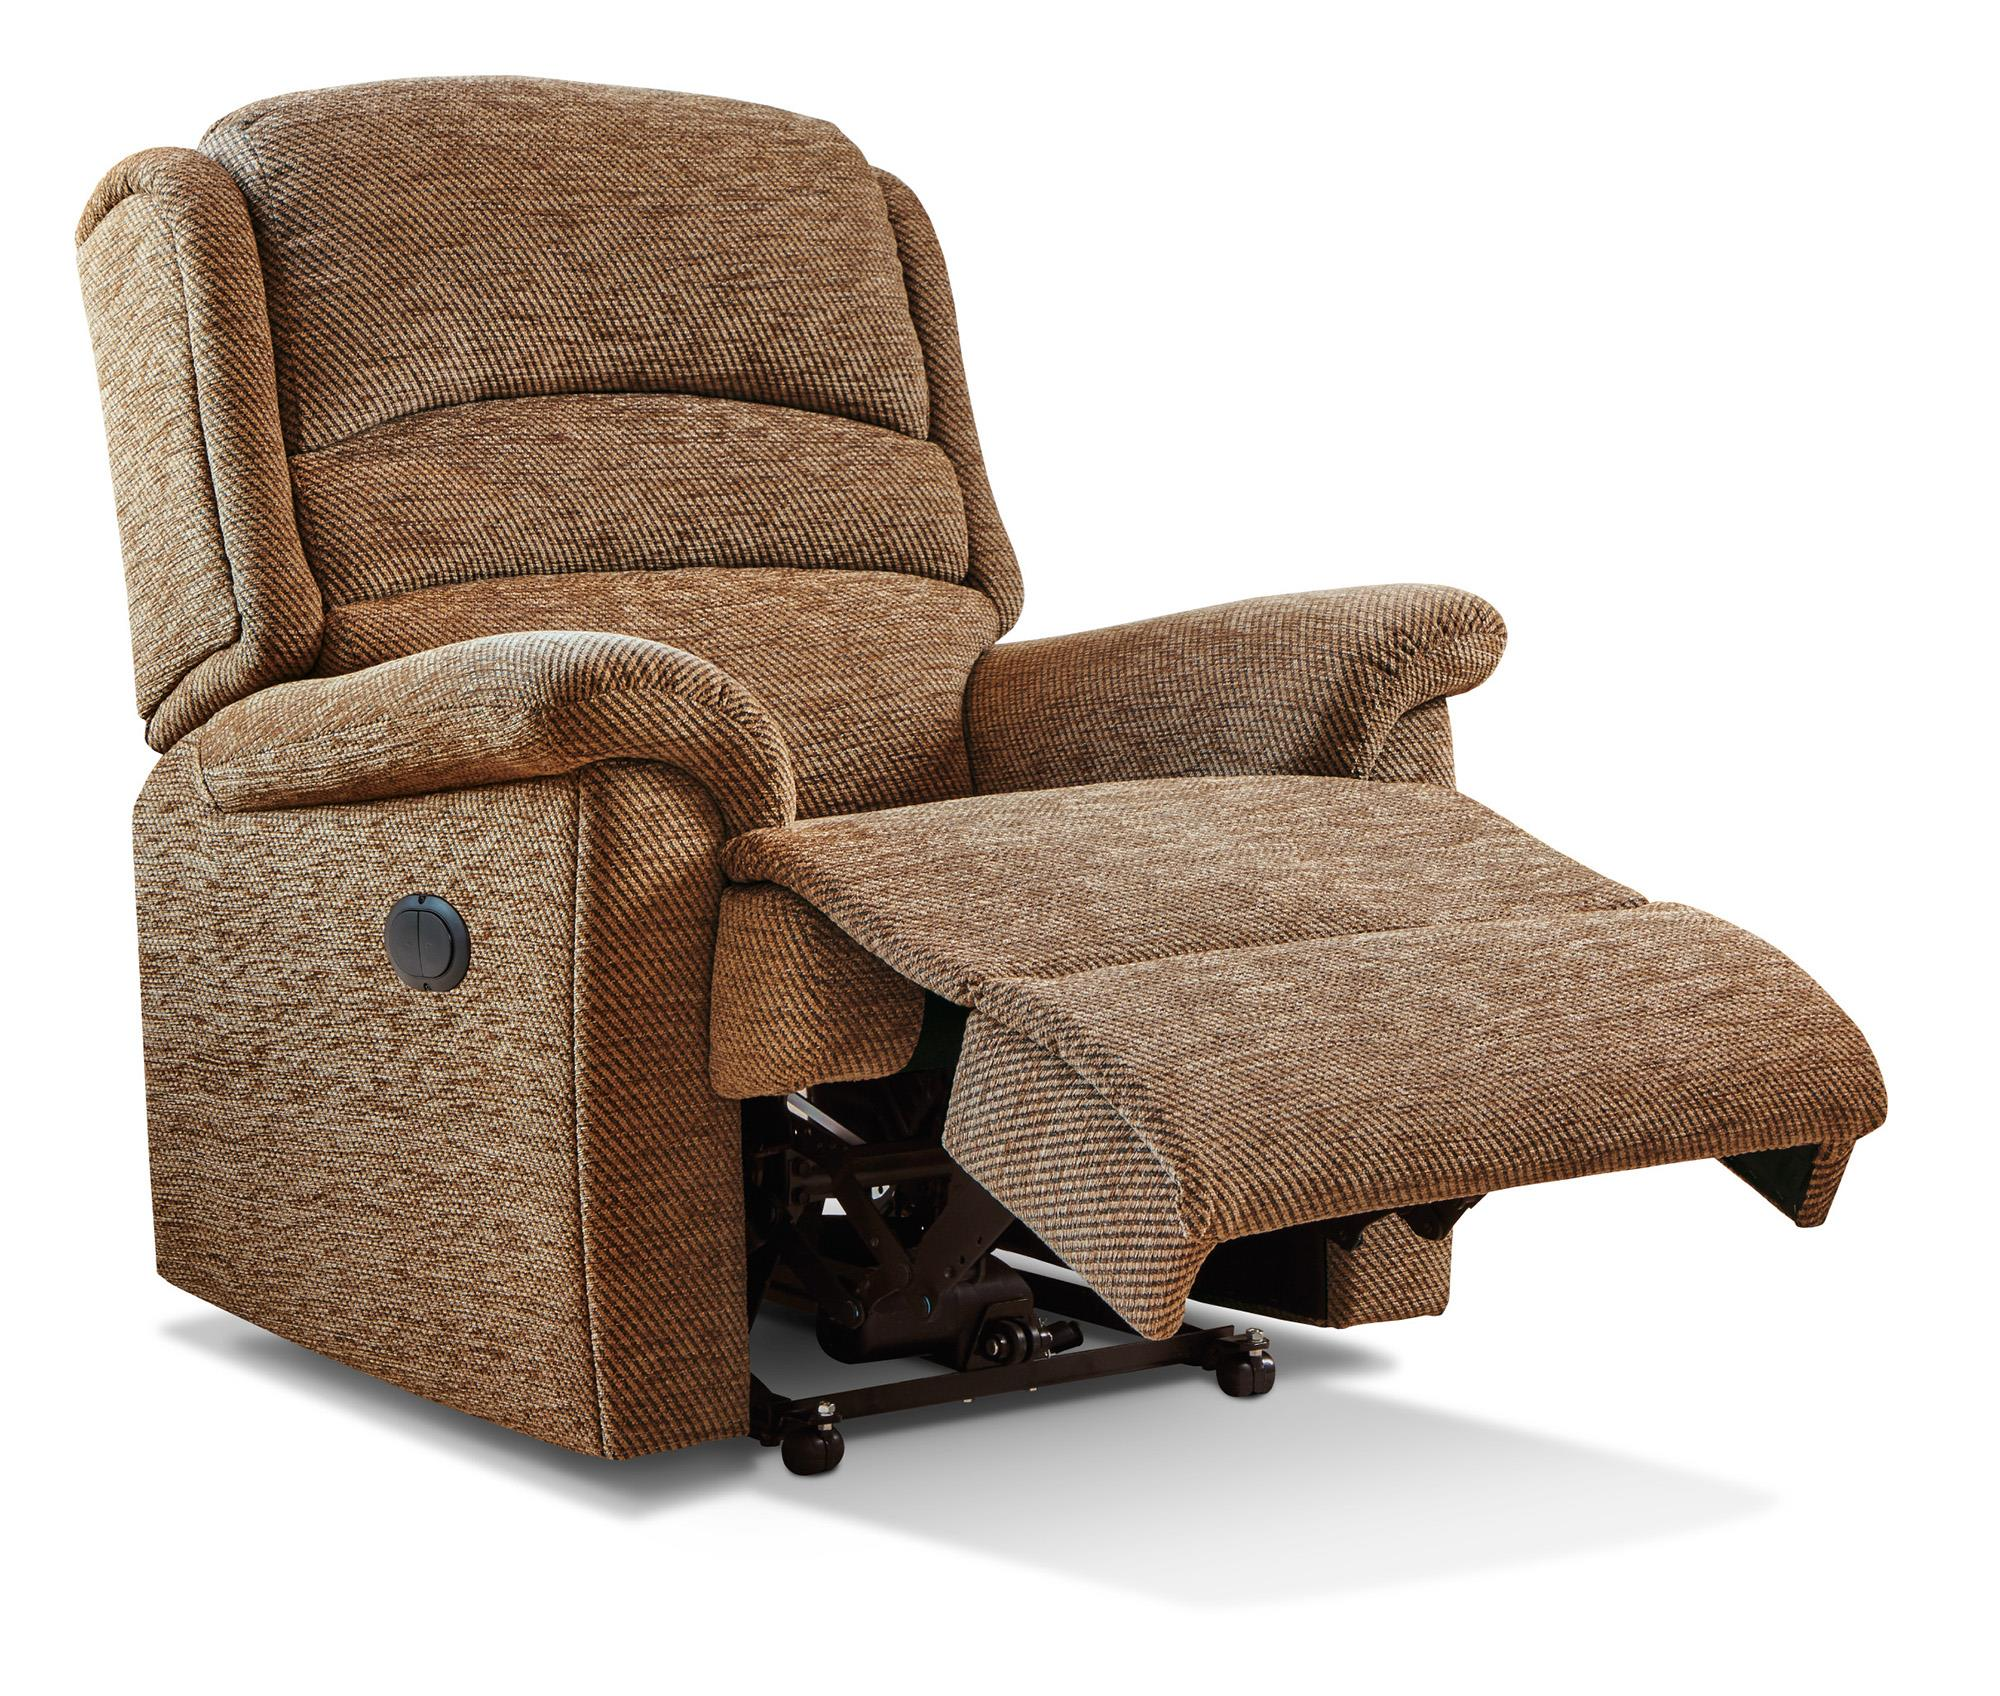 OLIVIA - Recliner Chair